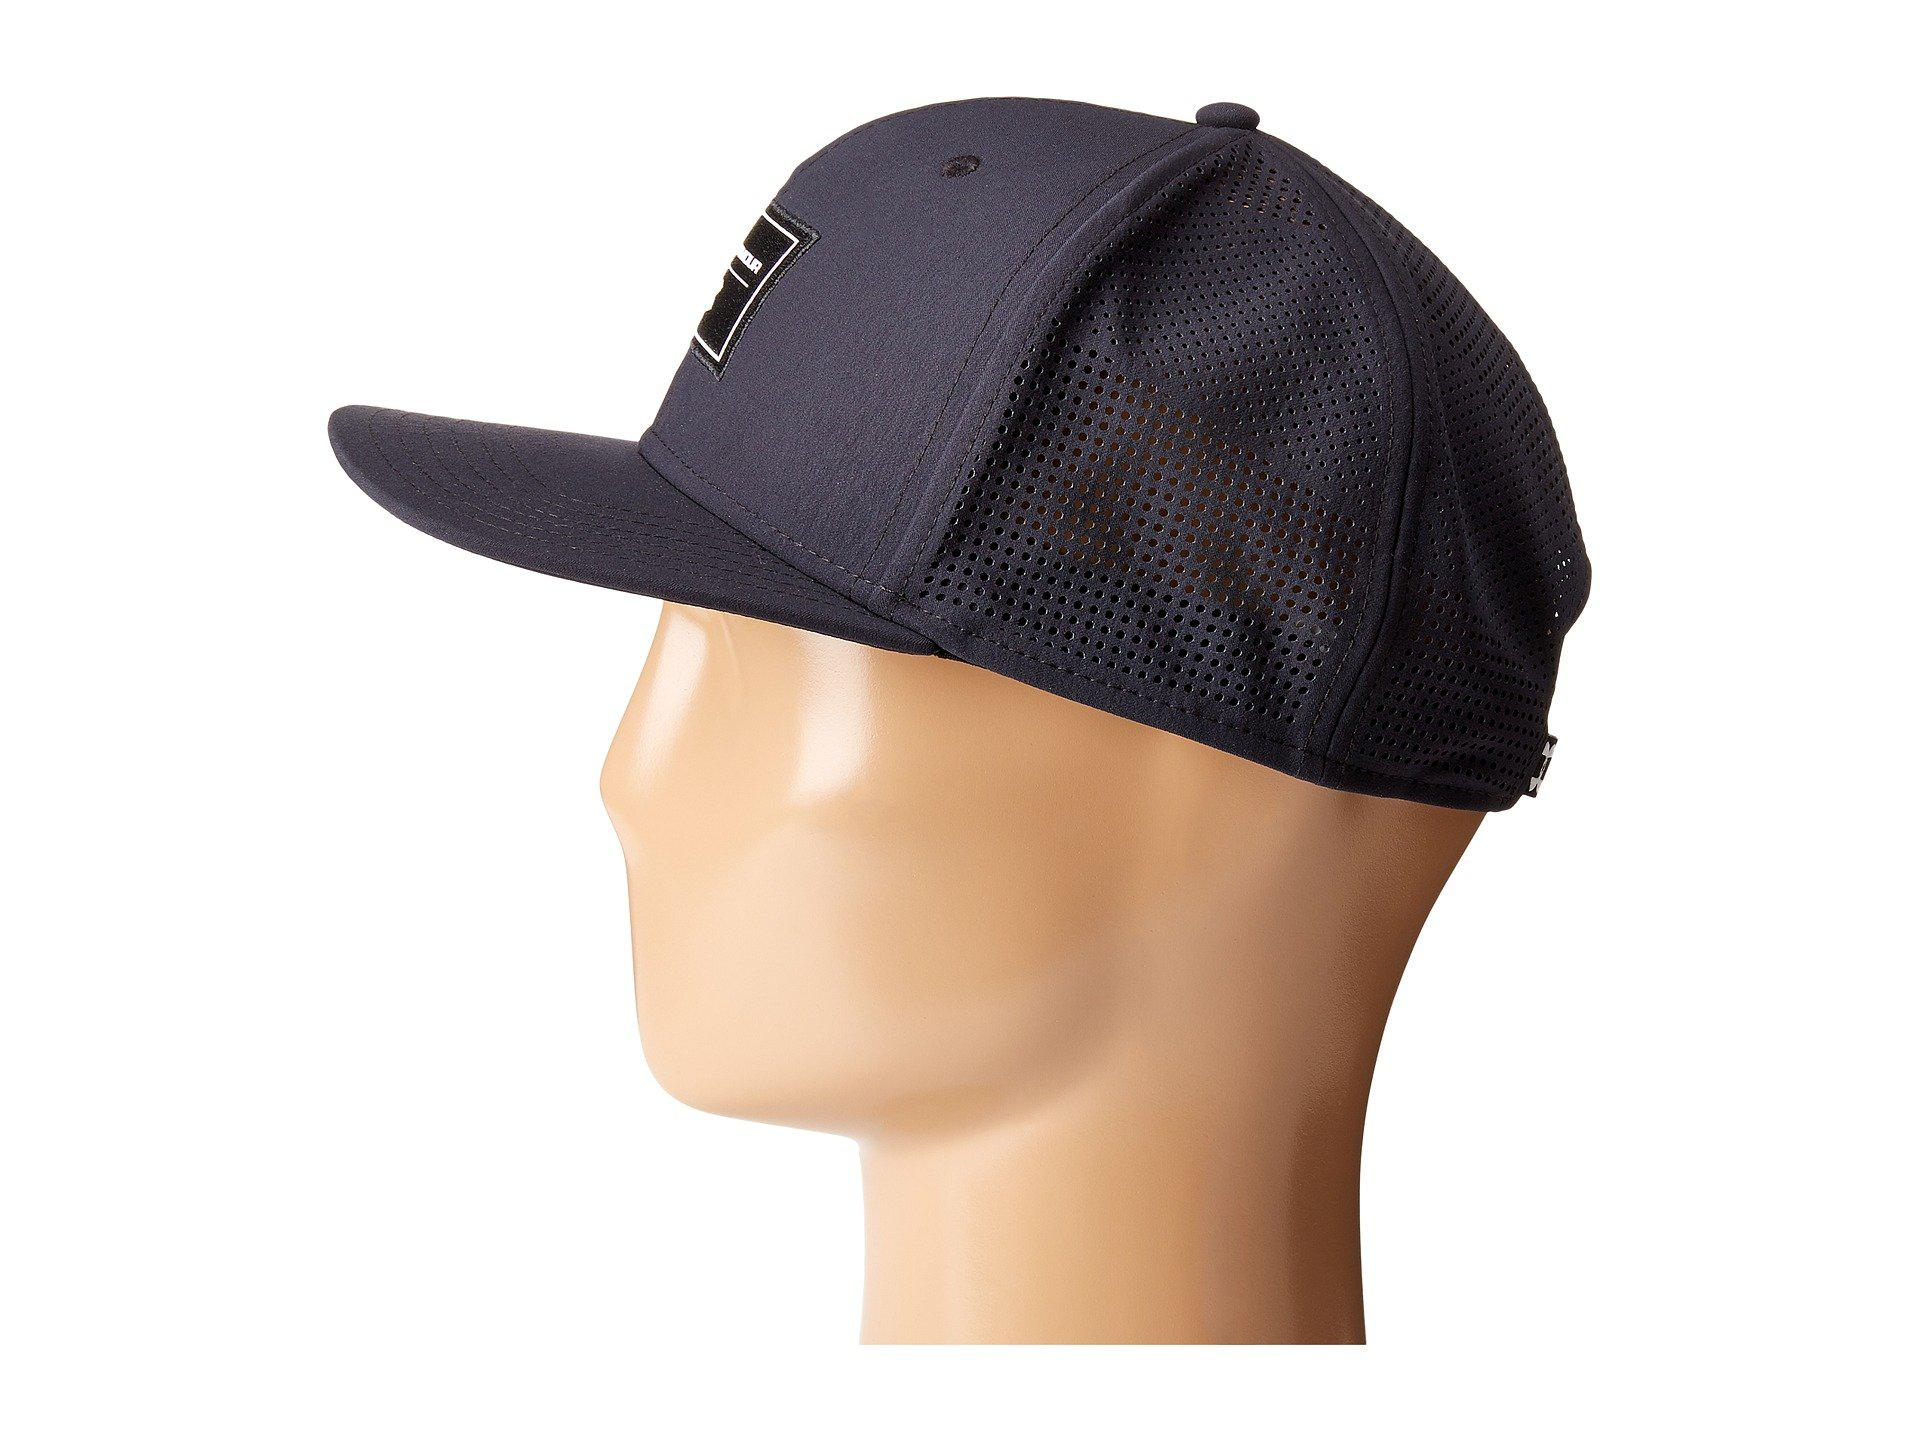 newest ec152 2f679 discount under armour. mens toronto blue jays driver cap 5c32a 830d3  uk  gallery. previously sold at zappos mens baseball caps 2055c 45956